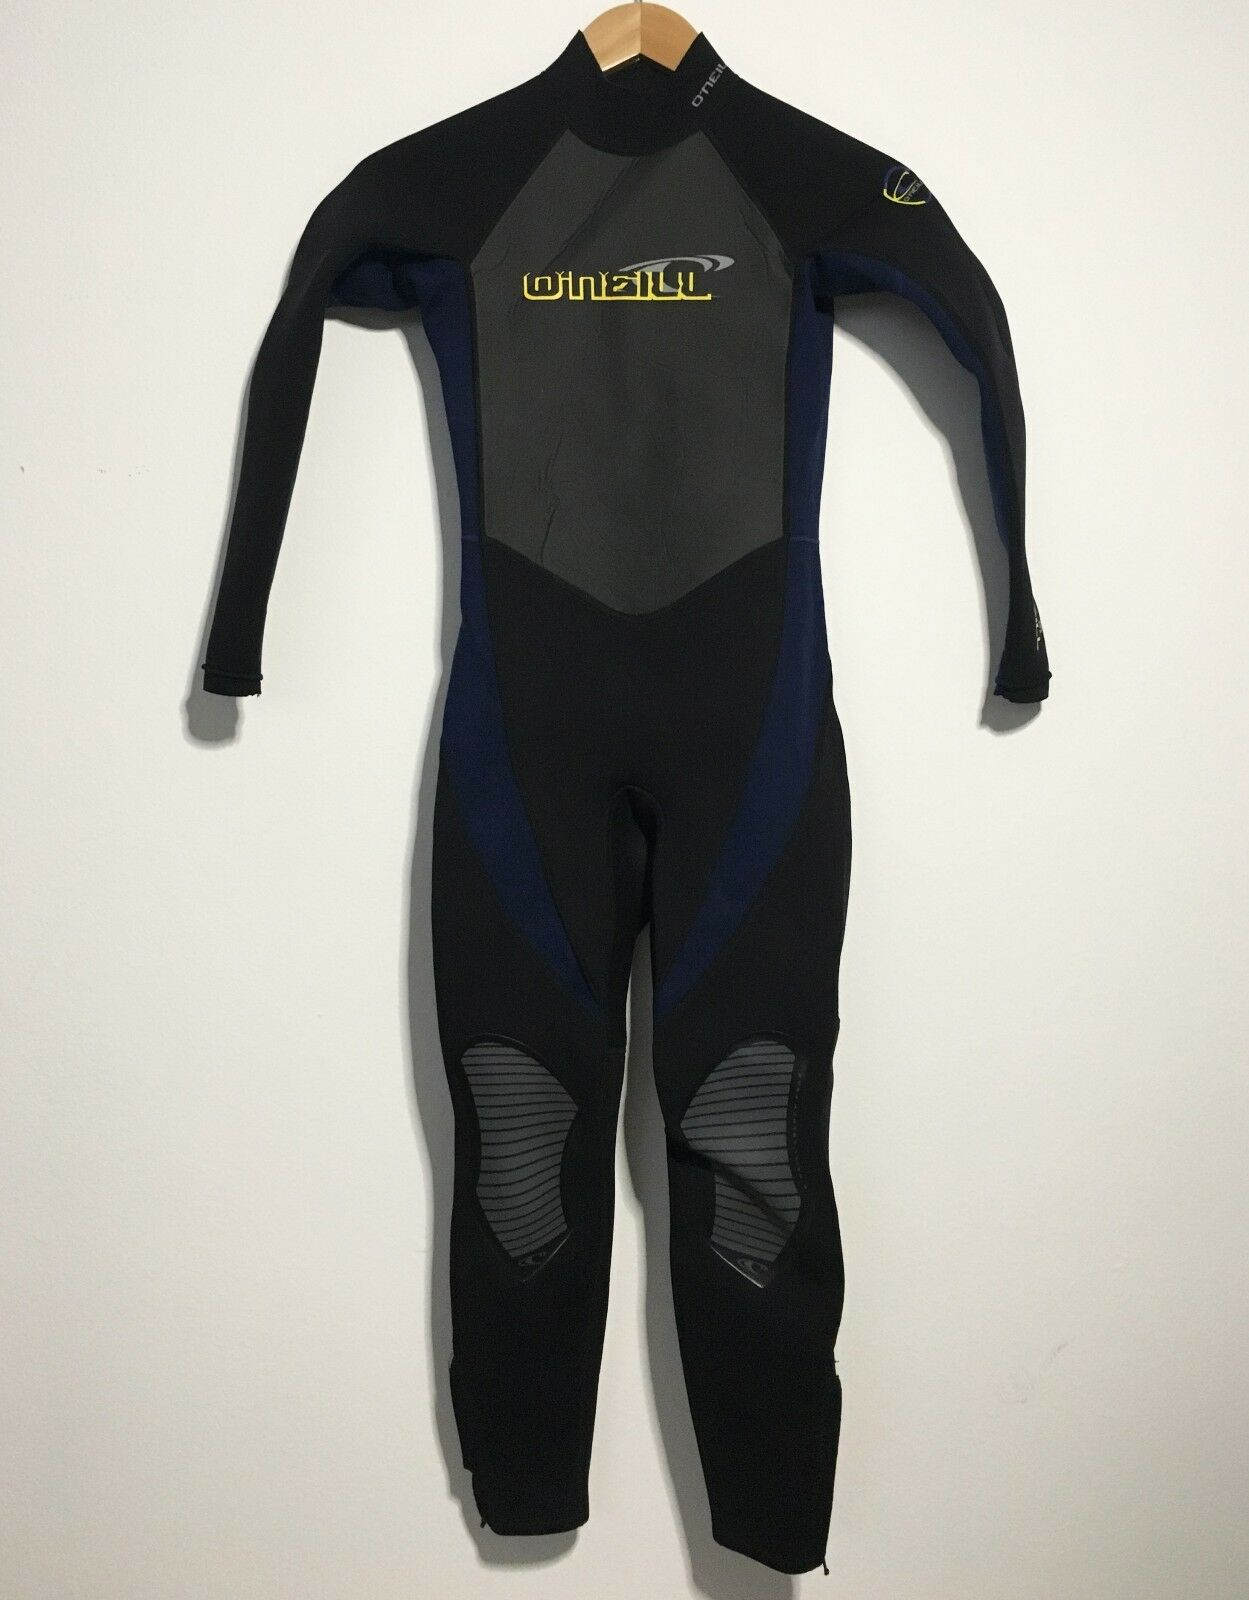 O'Neill  lds Full Wetsuit Juniors Size 12 Reactor  3 2 Kids Youth  world famous sale online